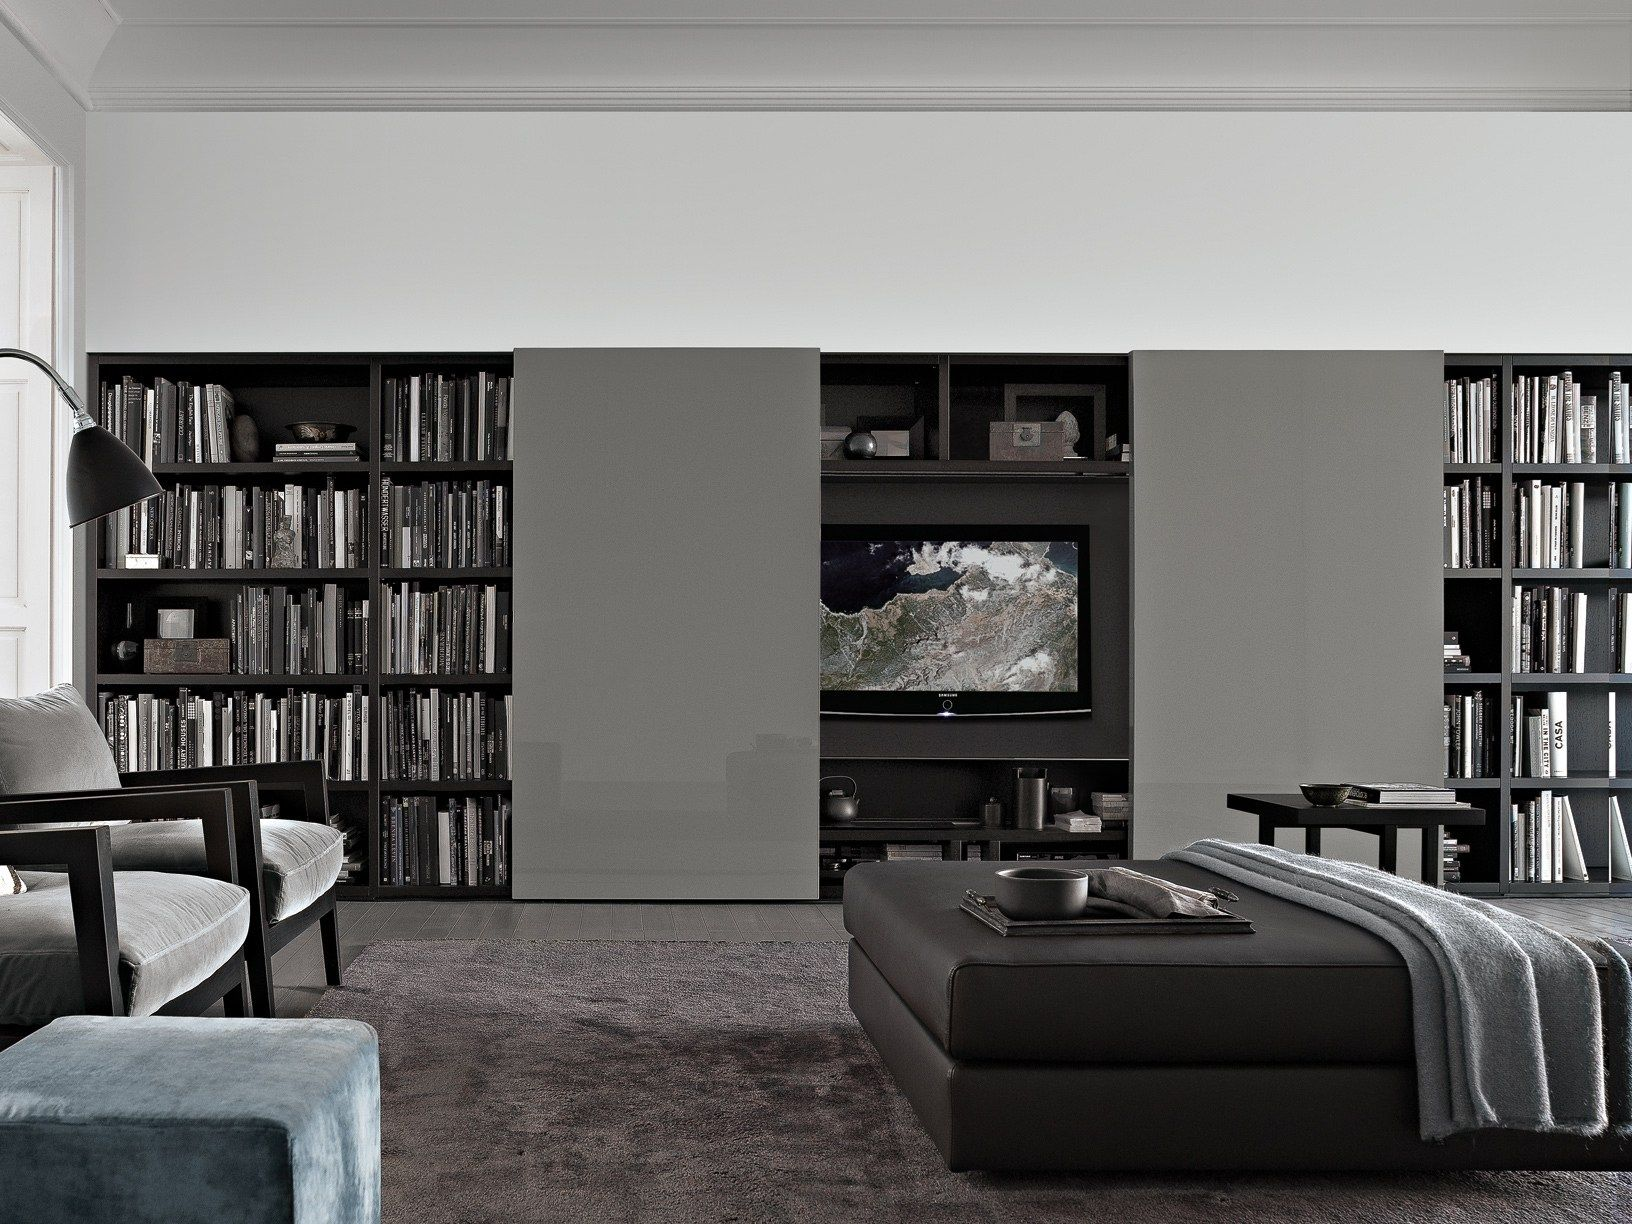 SECTIONAL WOODEN BOOKCASE WALL SYSTEM WALL SYSTEM COLLECTION BY ...